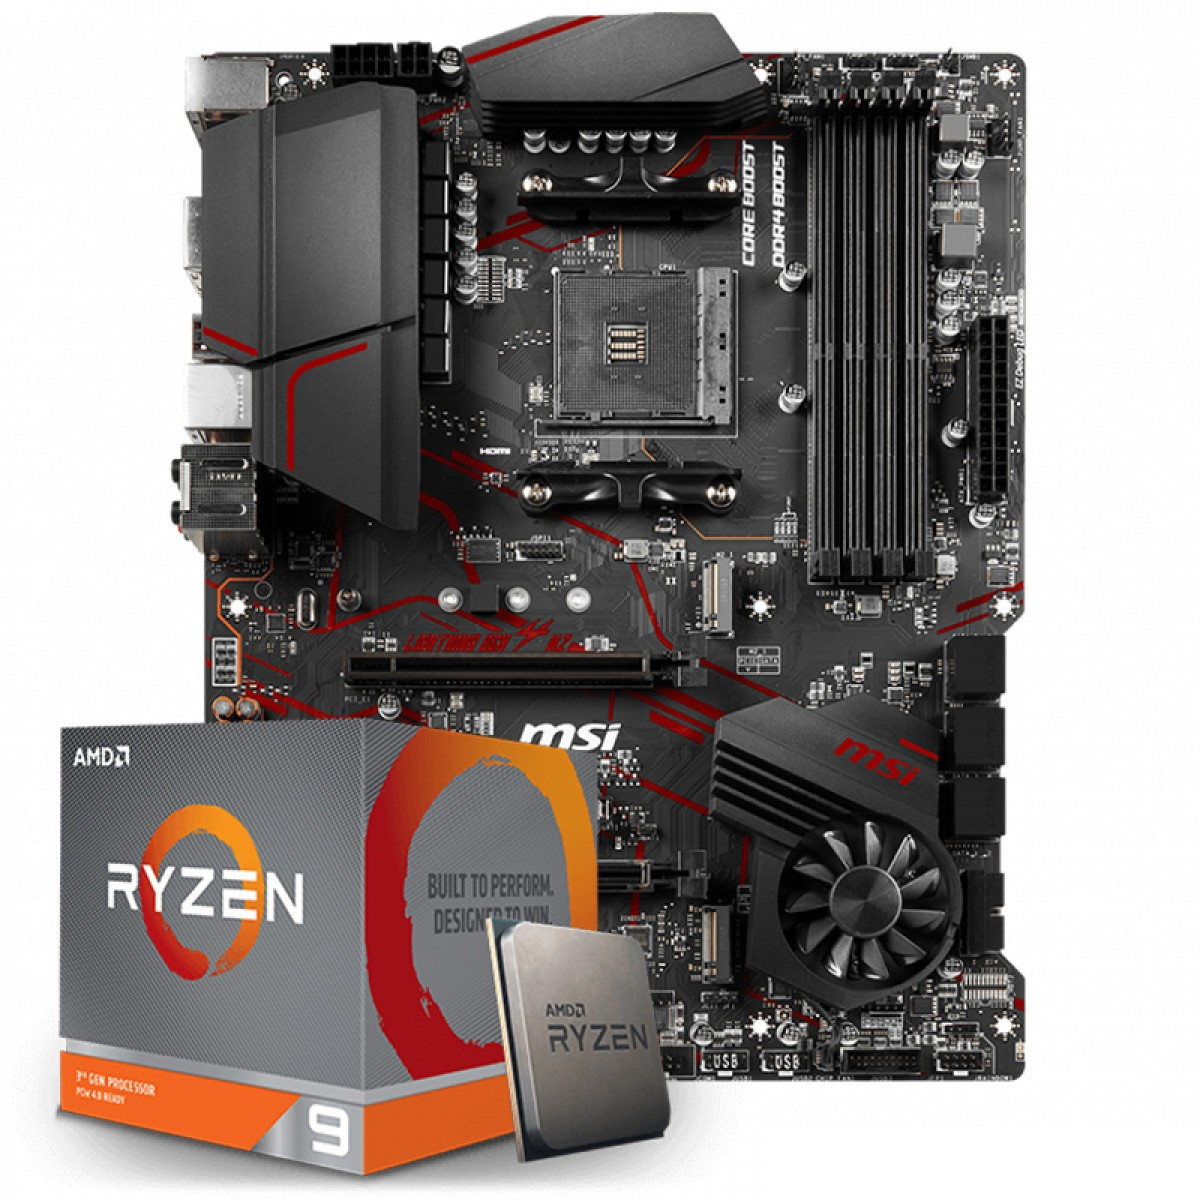 Kit Upgrade Placa Mãe MSI MPG X570 Gaming Plus, AMD AM4 +  Processador AMD Ryzen 9 3900x 3.8GHz